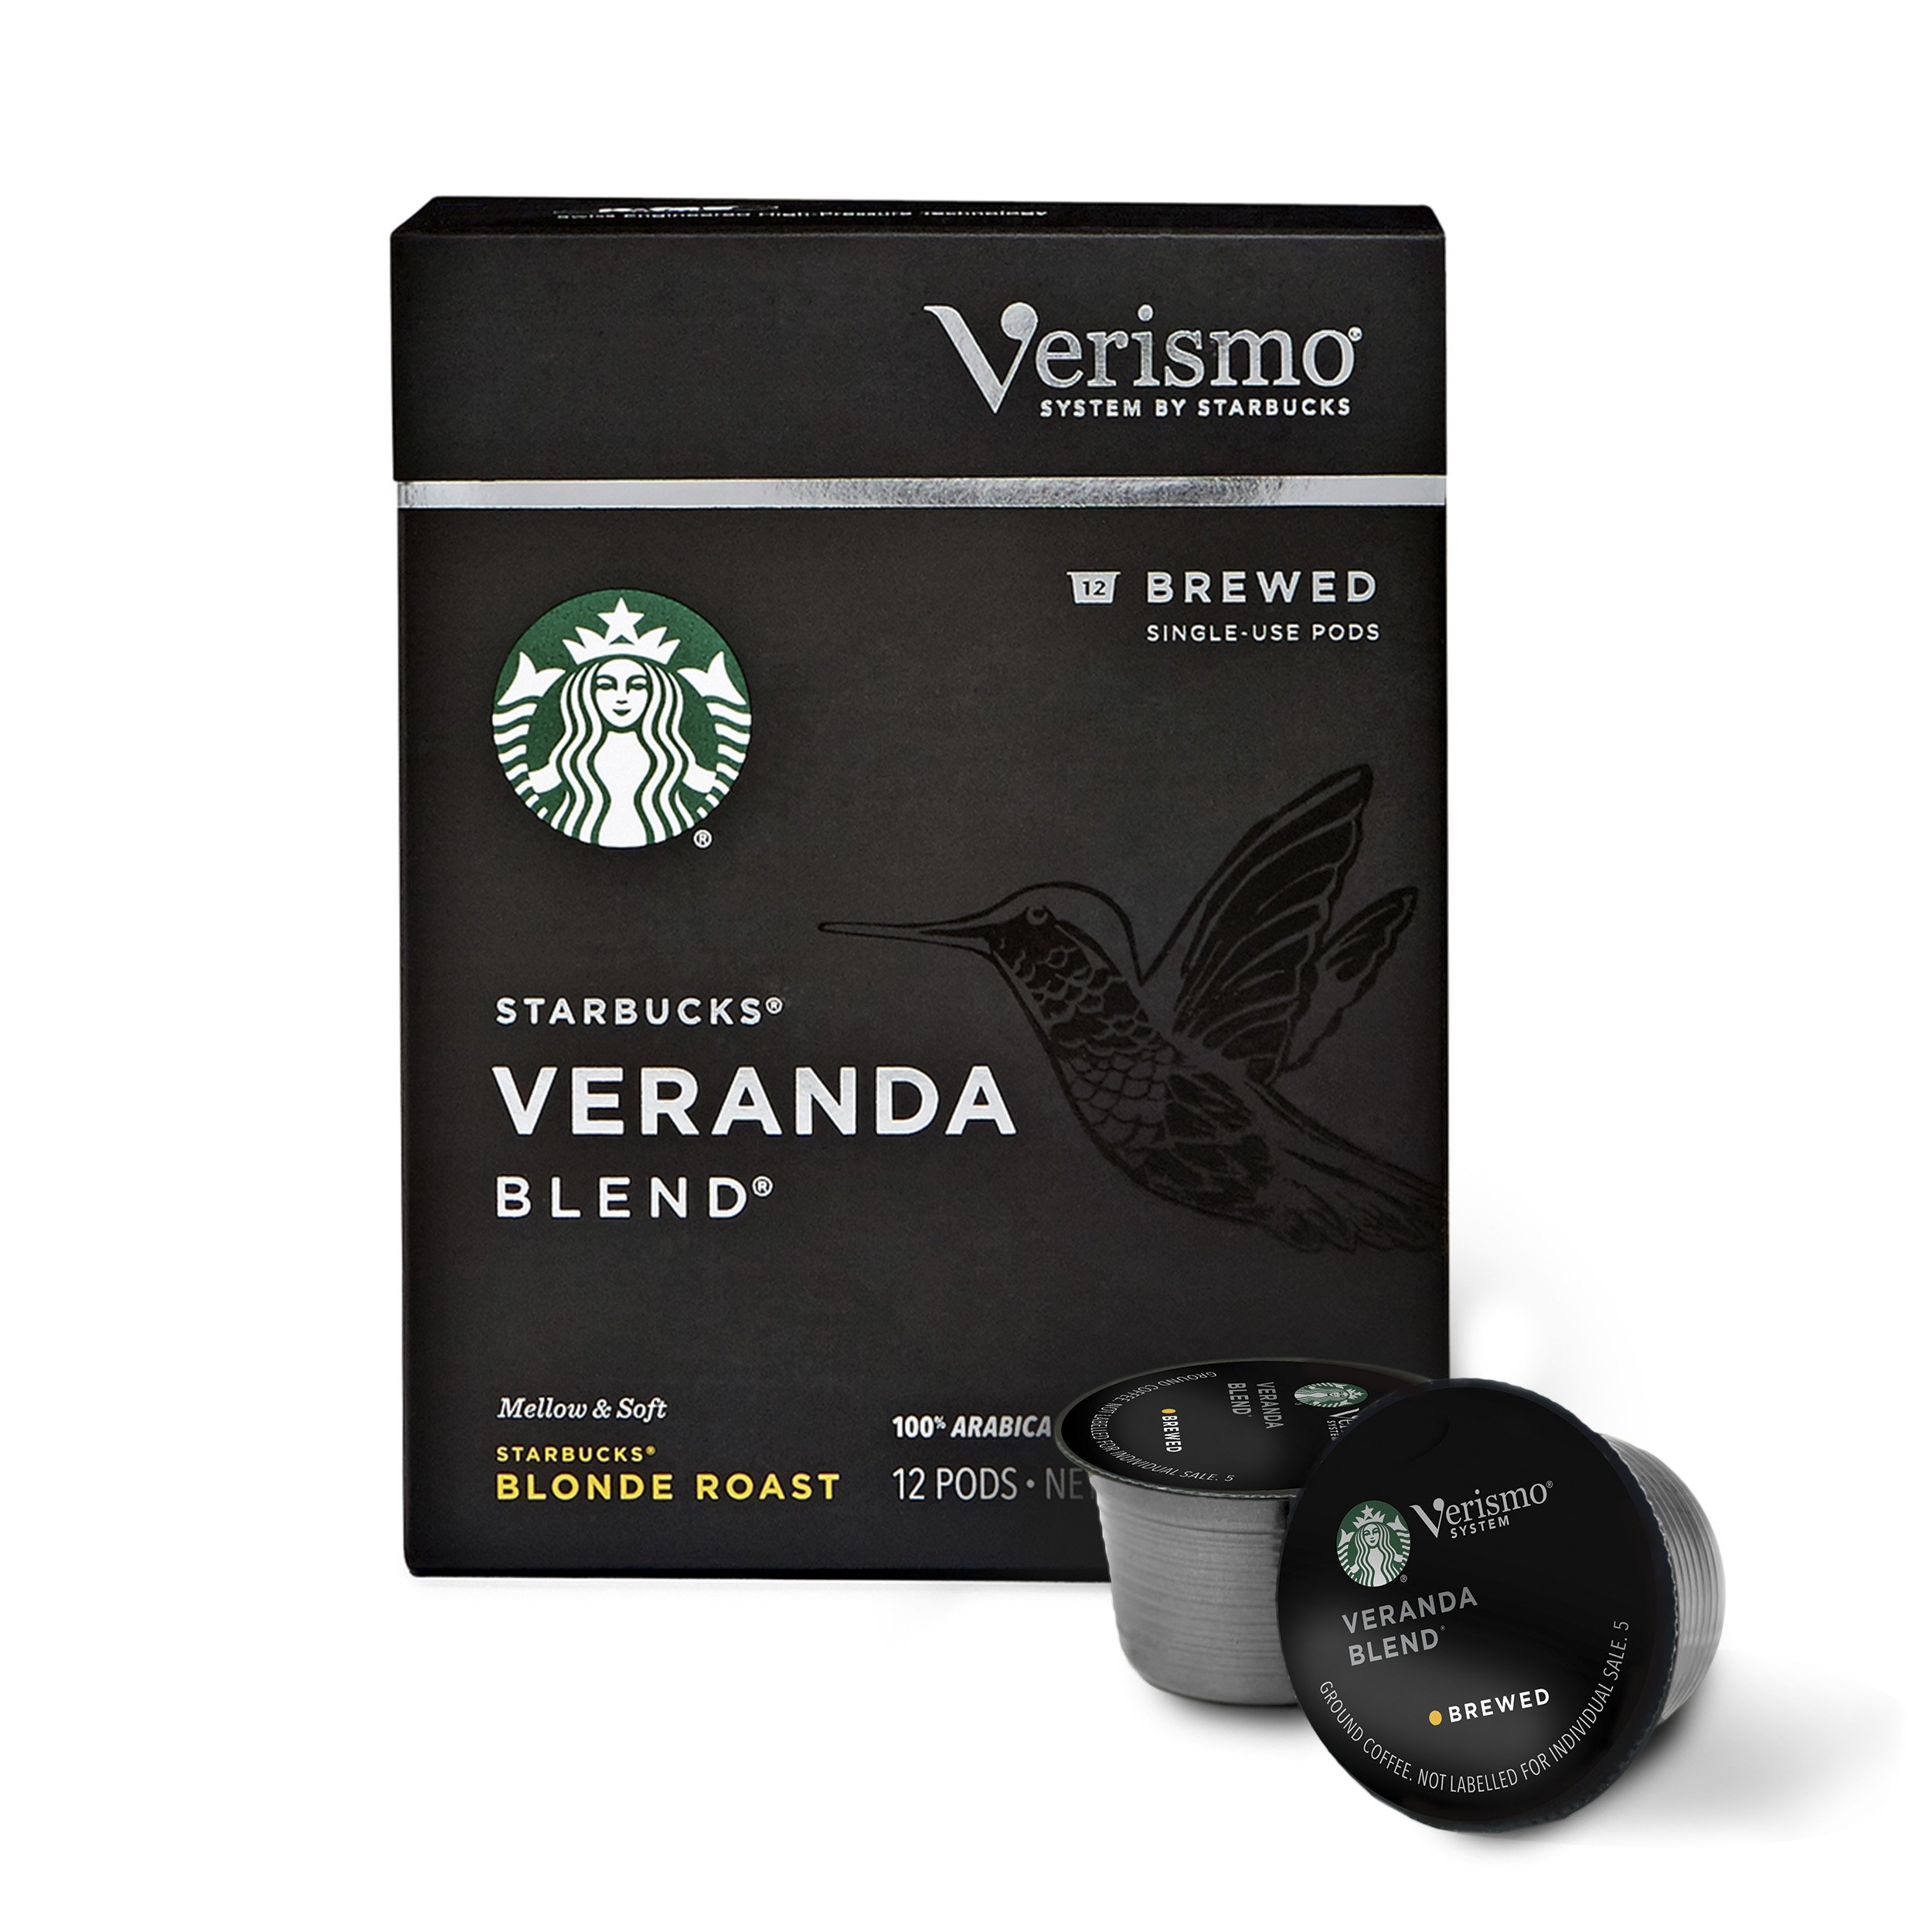 Starbucks Verismo Veranda Blend Brewed Coffee Single Serve Verismo Pods, Blonde Roast, 6 boxes of 12 (72 total Verismo pods) by Starbucks